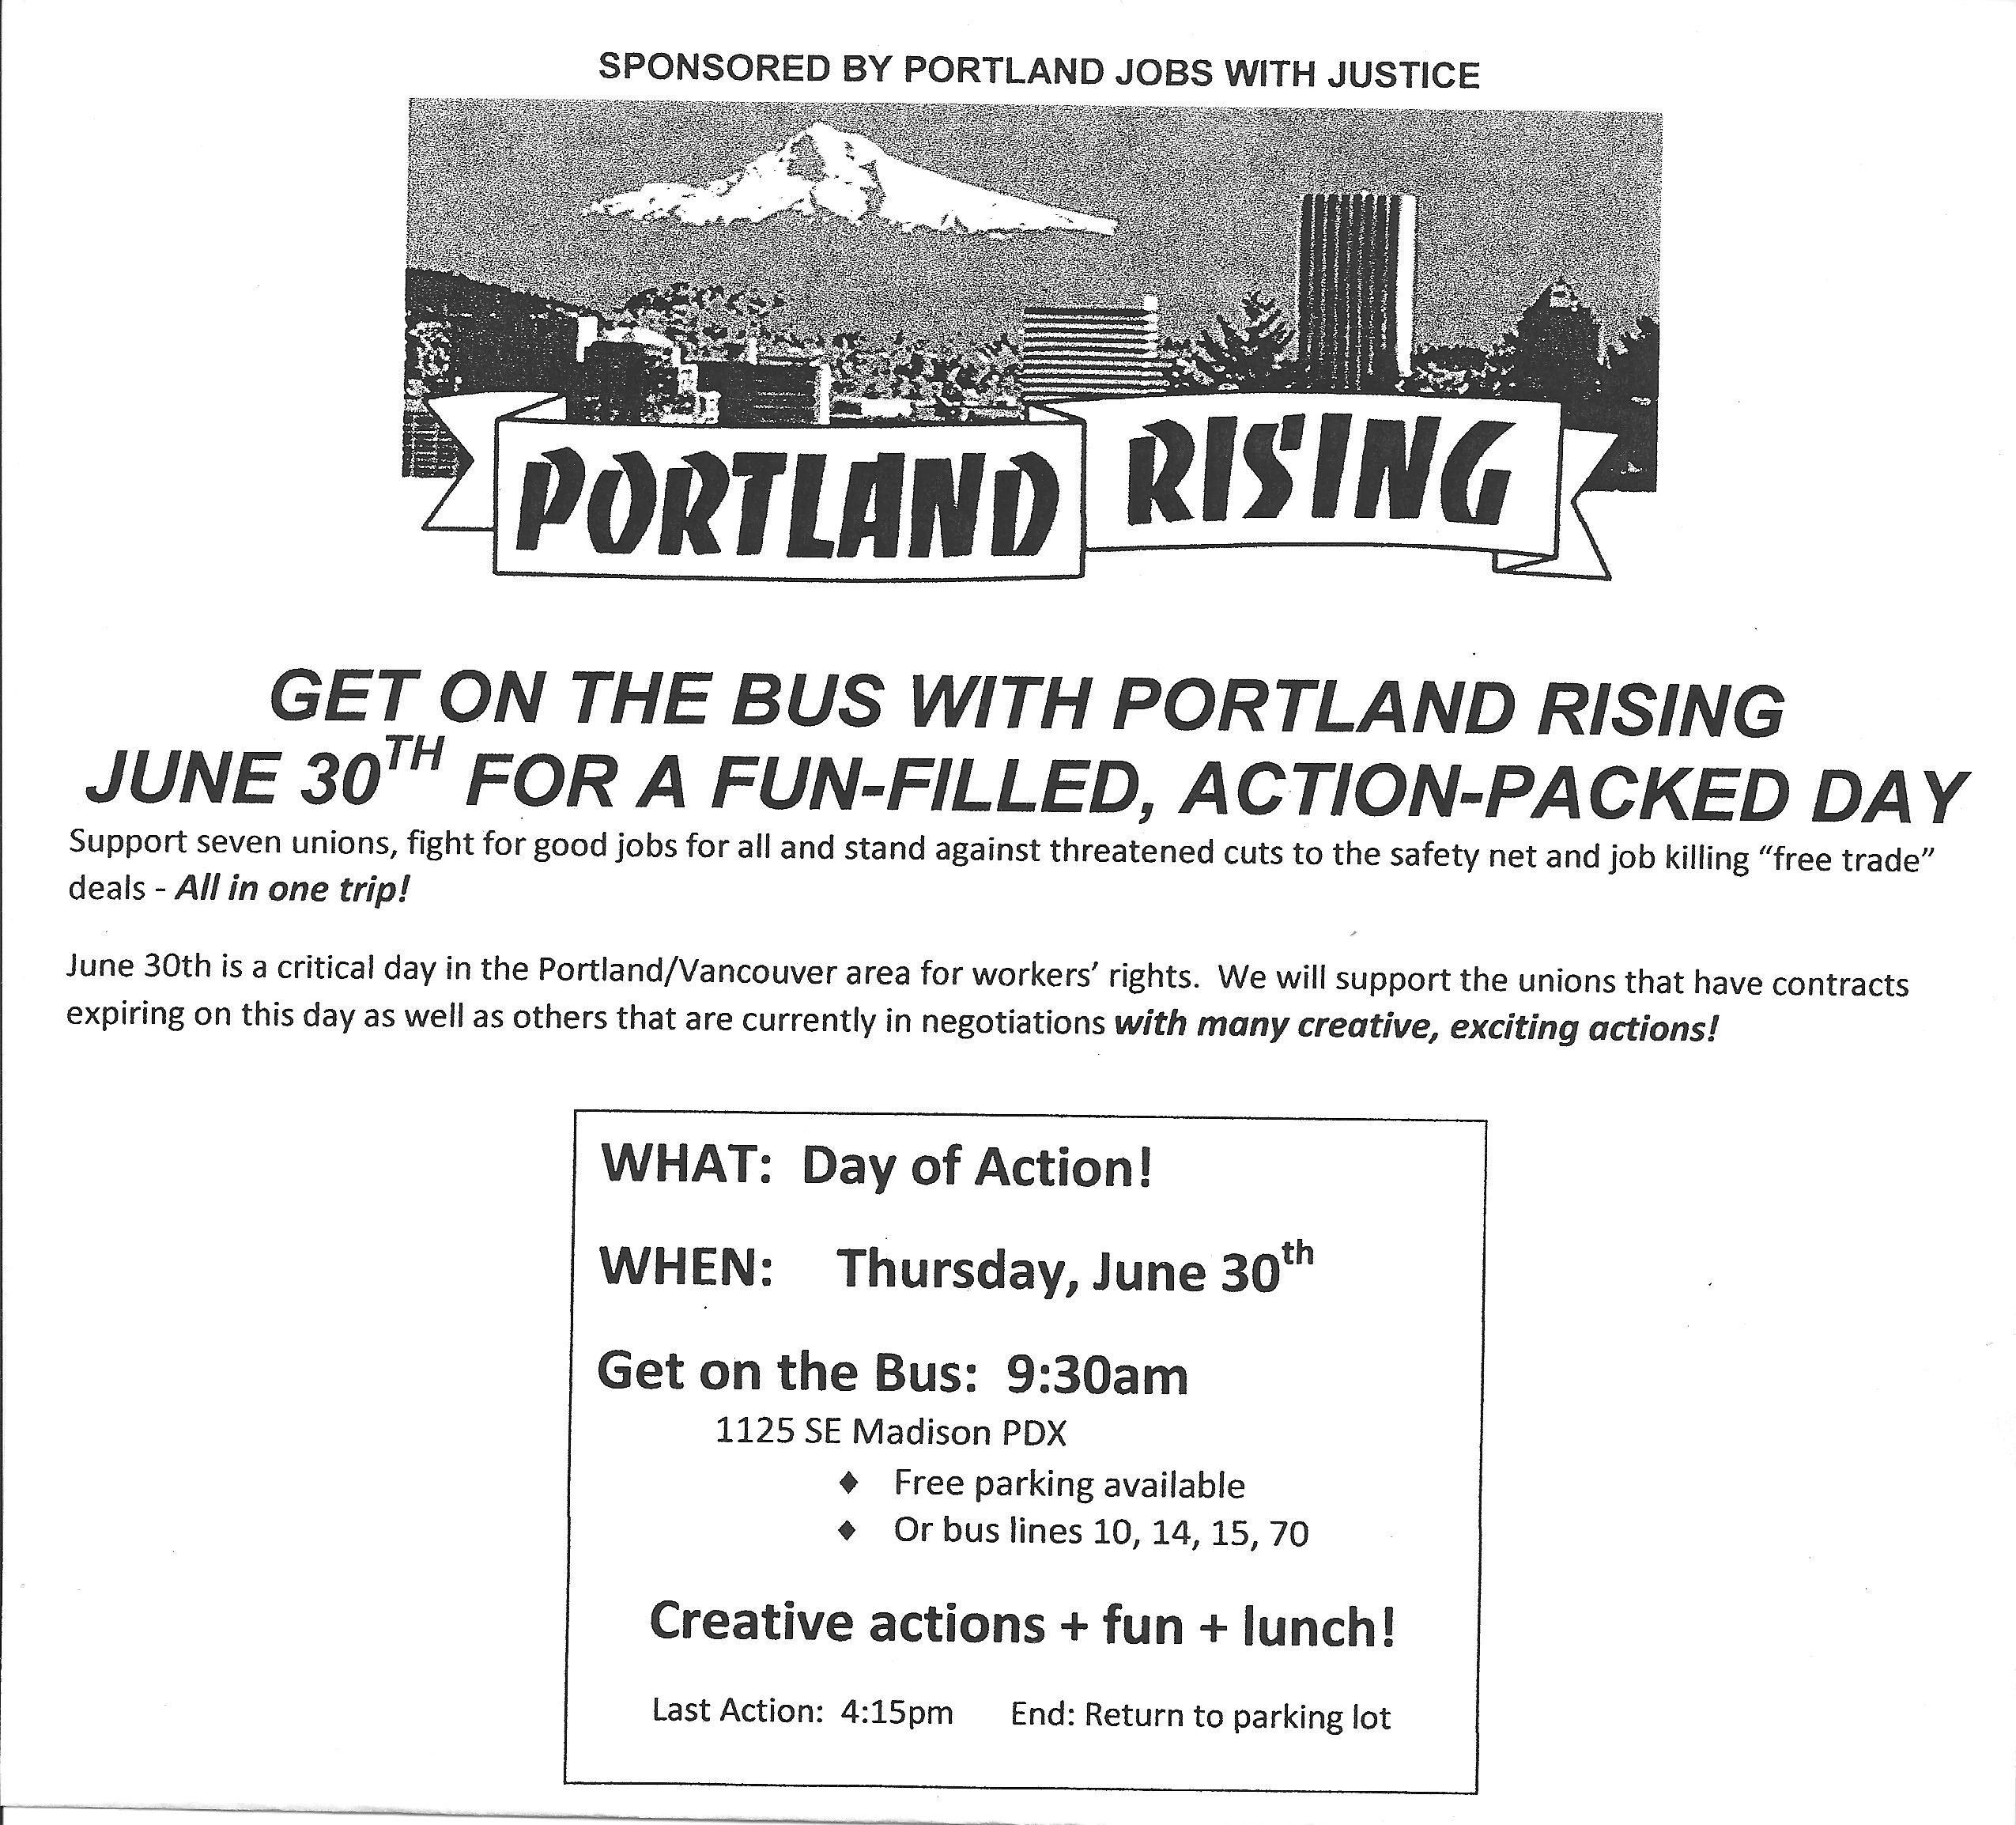 Portland Rising Day of Action for Good Jobs